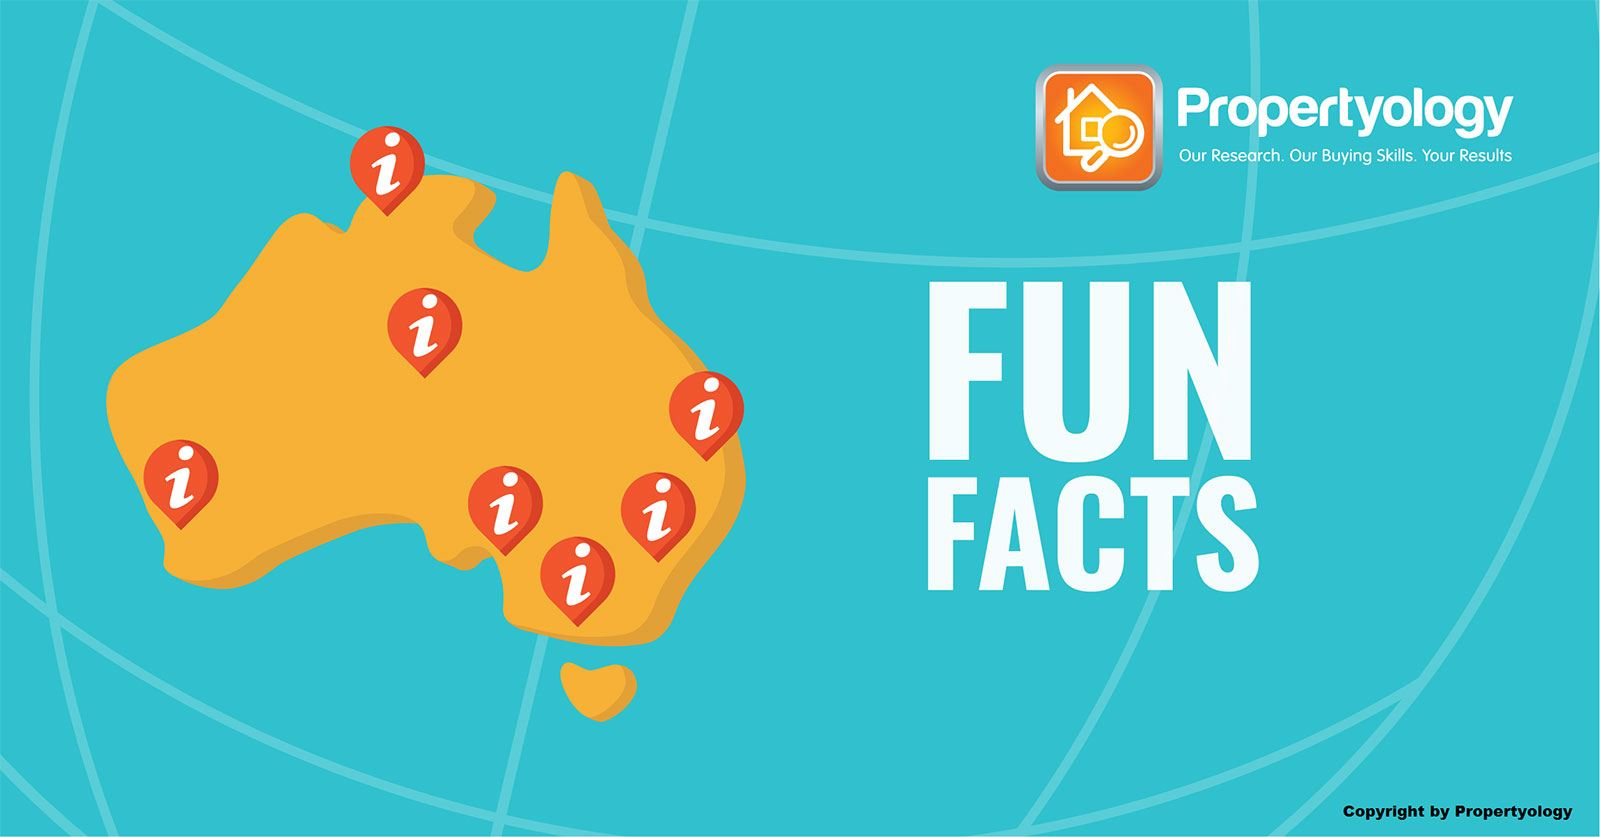 Fascinating Things You'd Never Know About Australian Real Estate